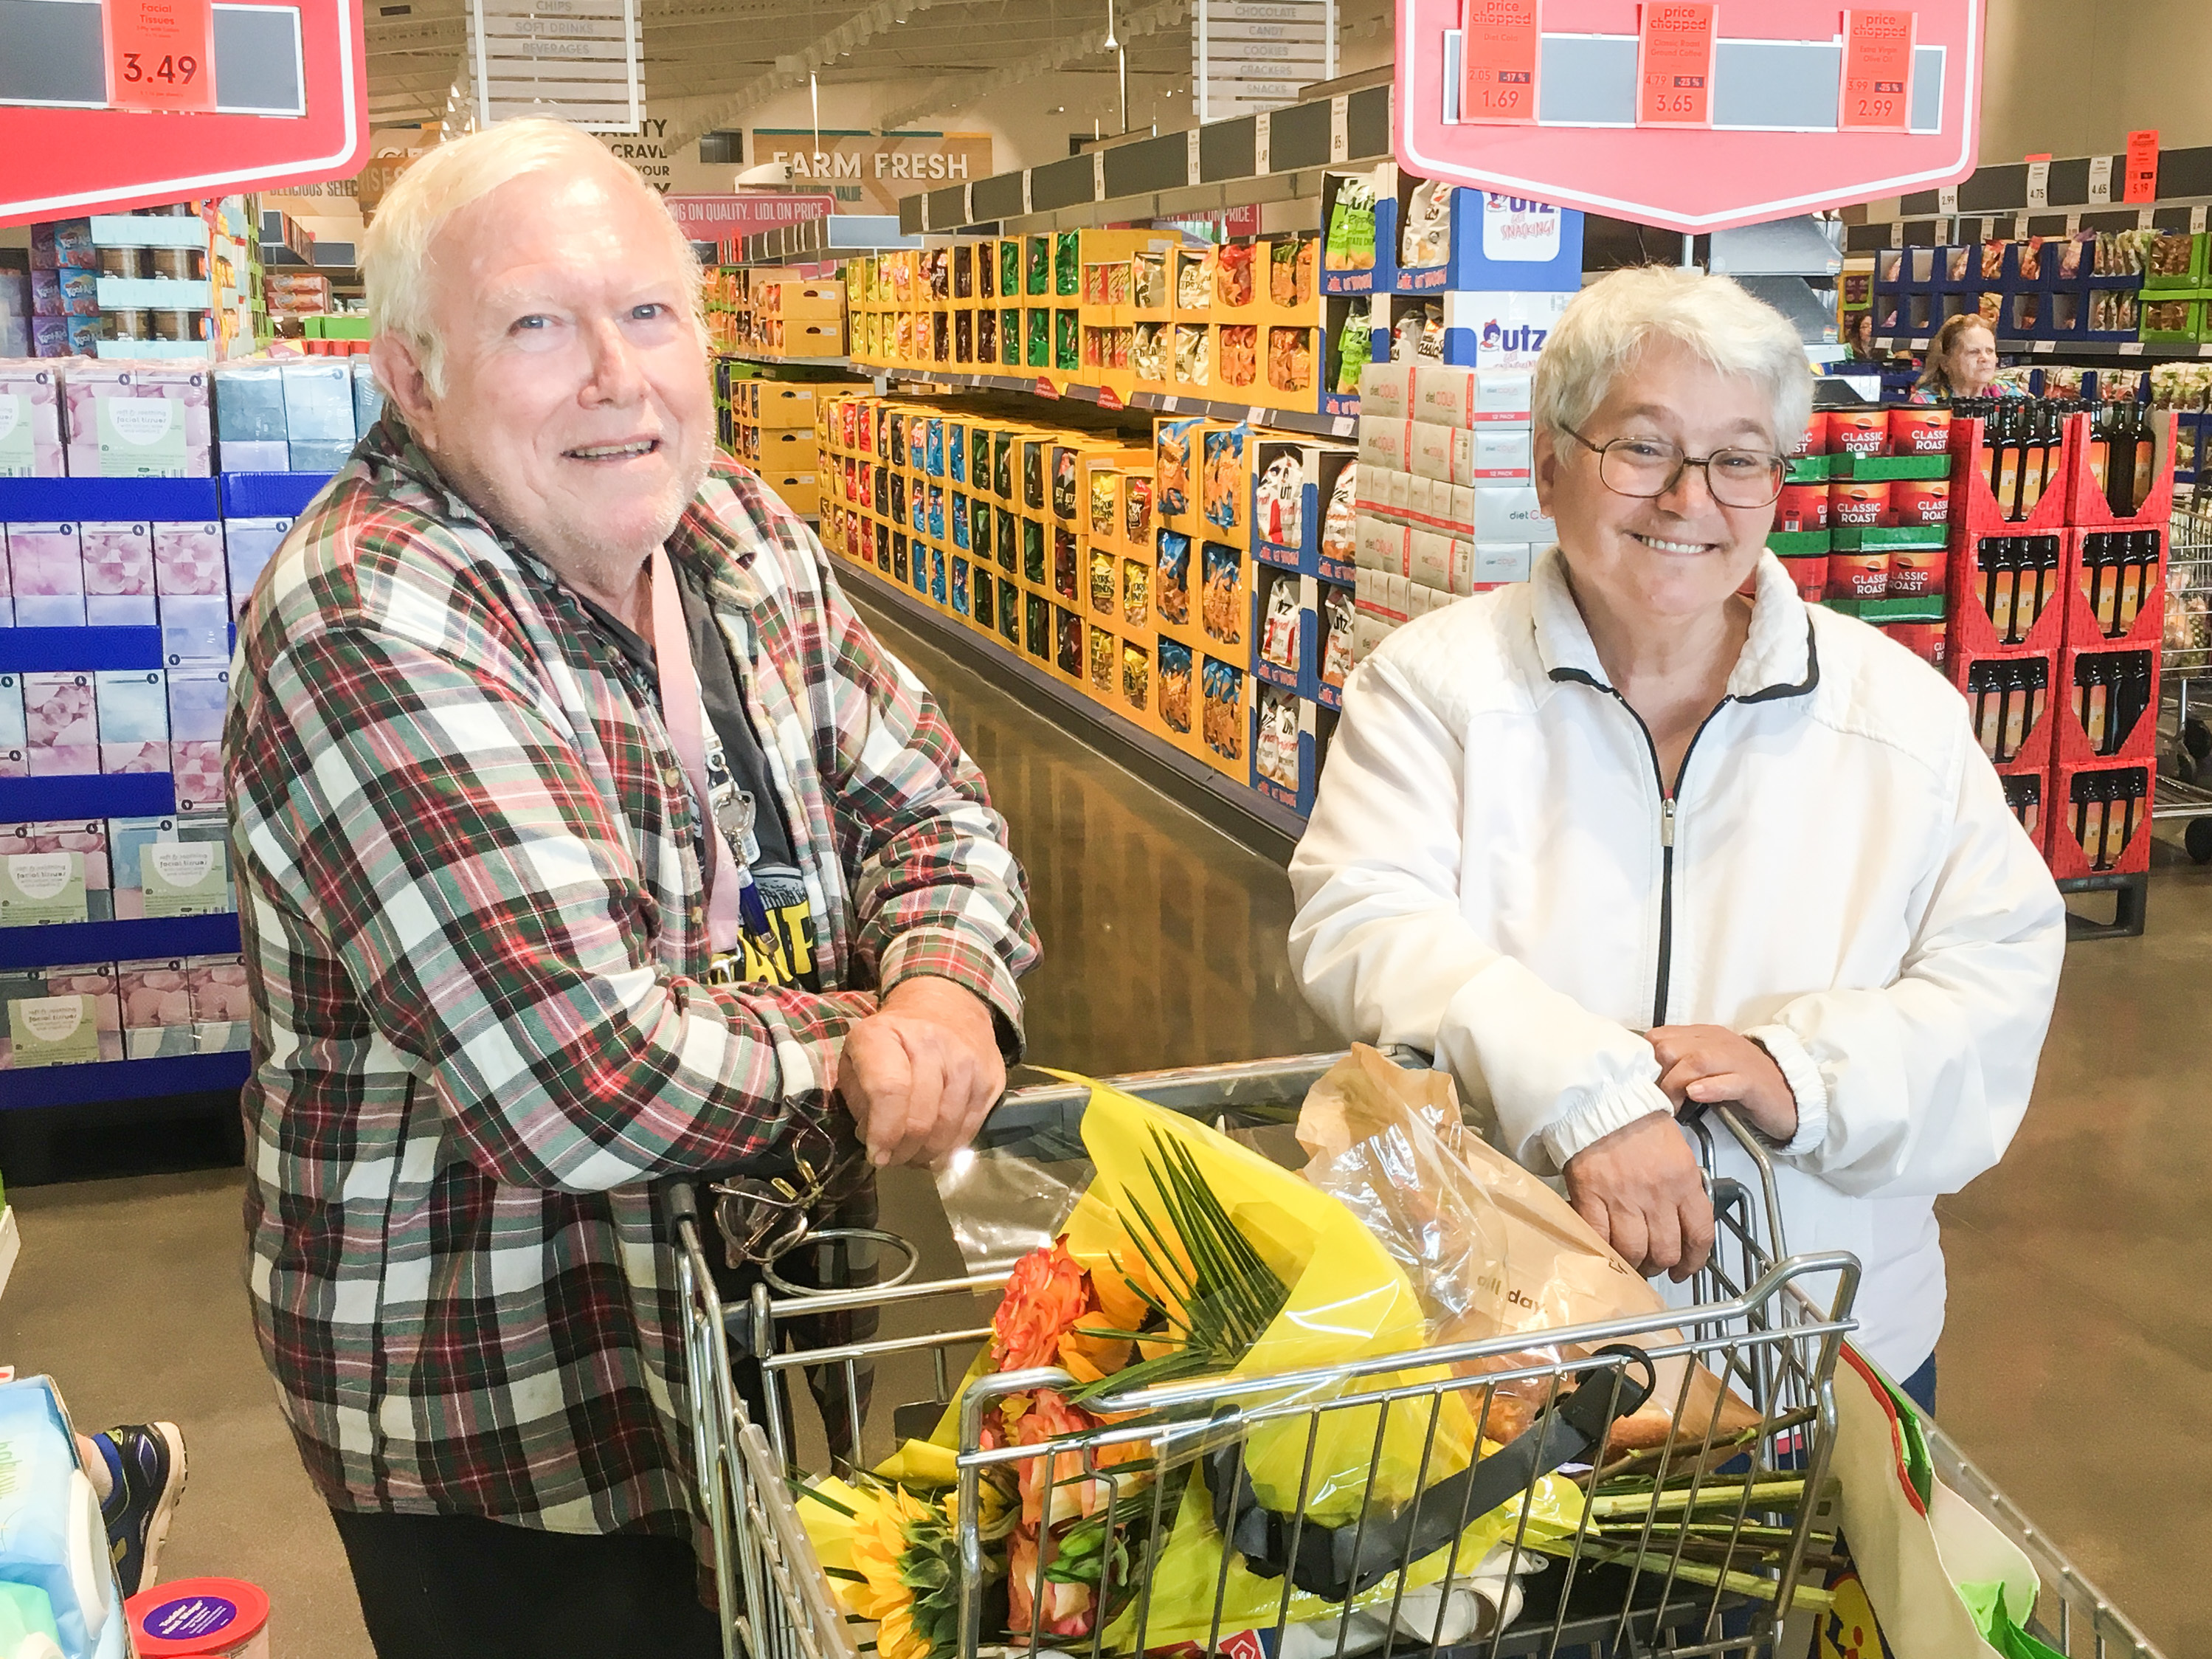 Discount Grocers Aldi And Lidl Give U S  Stores A Run For